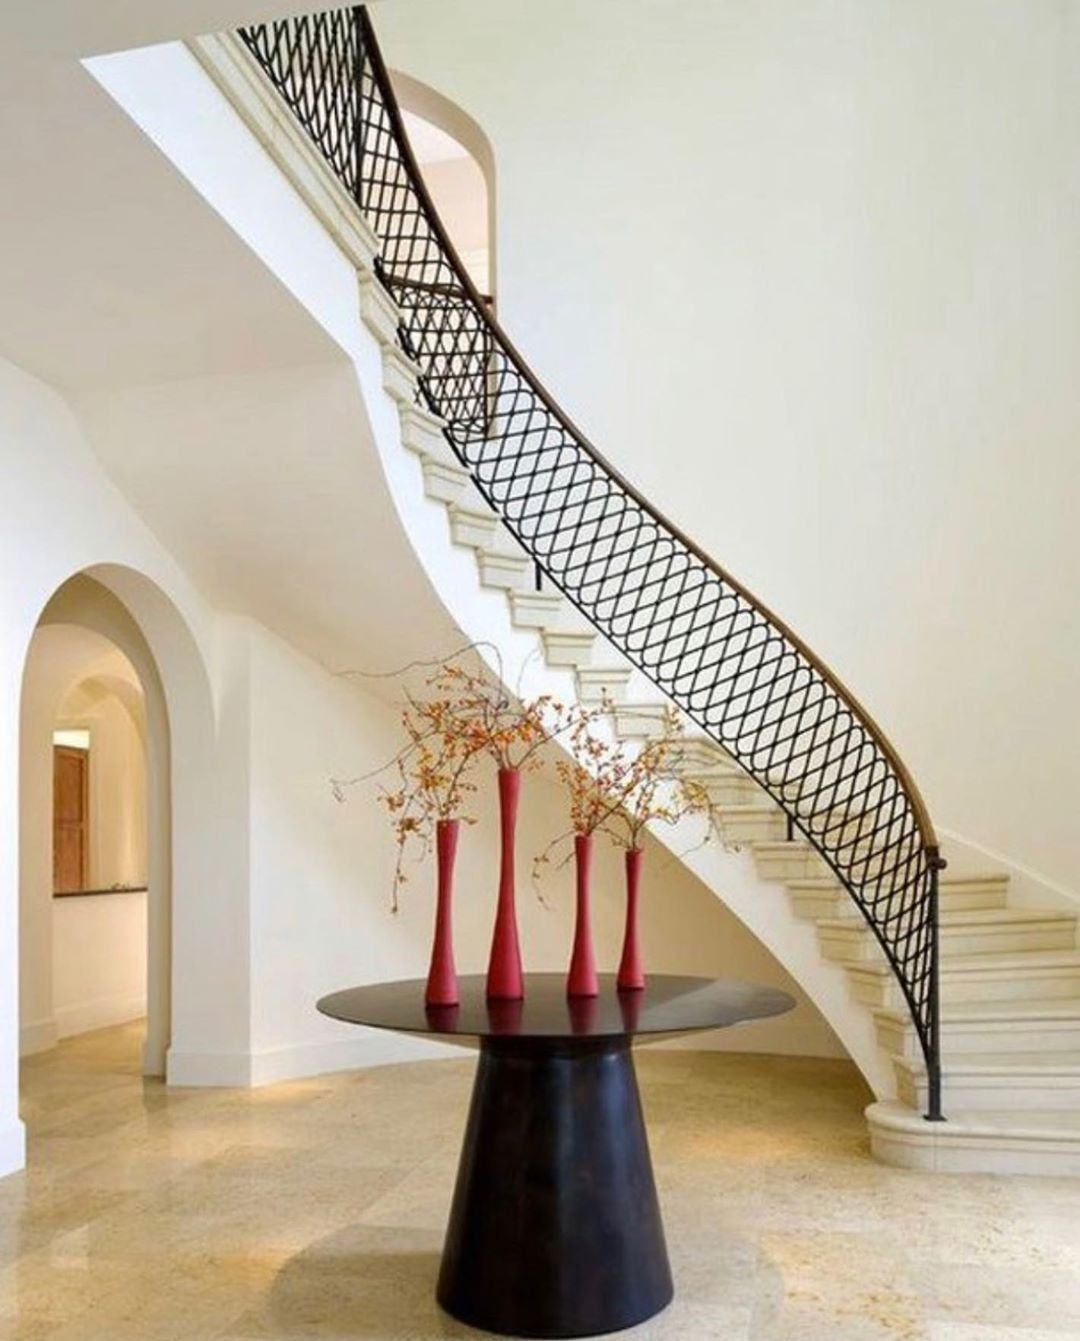 Pin By Merlissa On Cool Houses In 2020 Staircase Design Iron Stair Railing Stair Railing